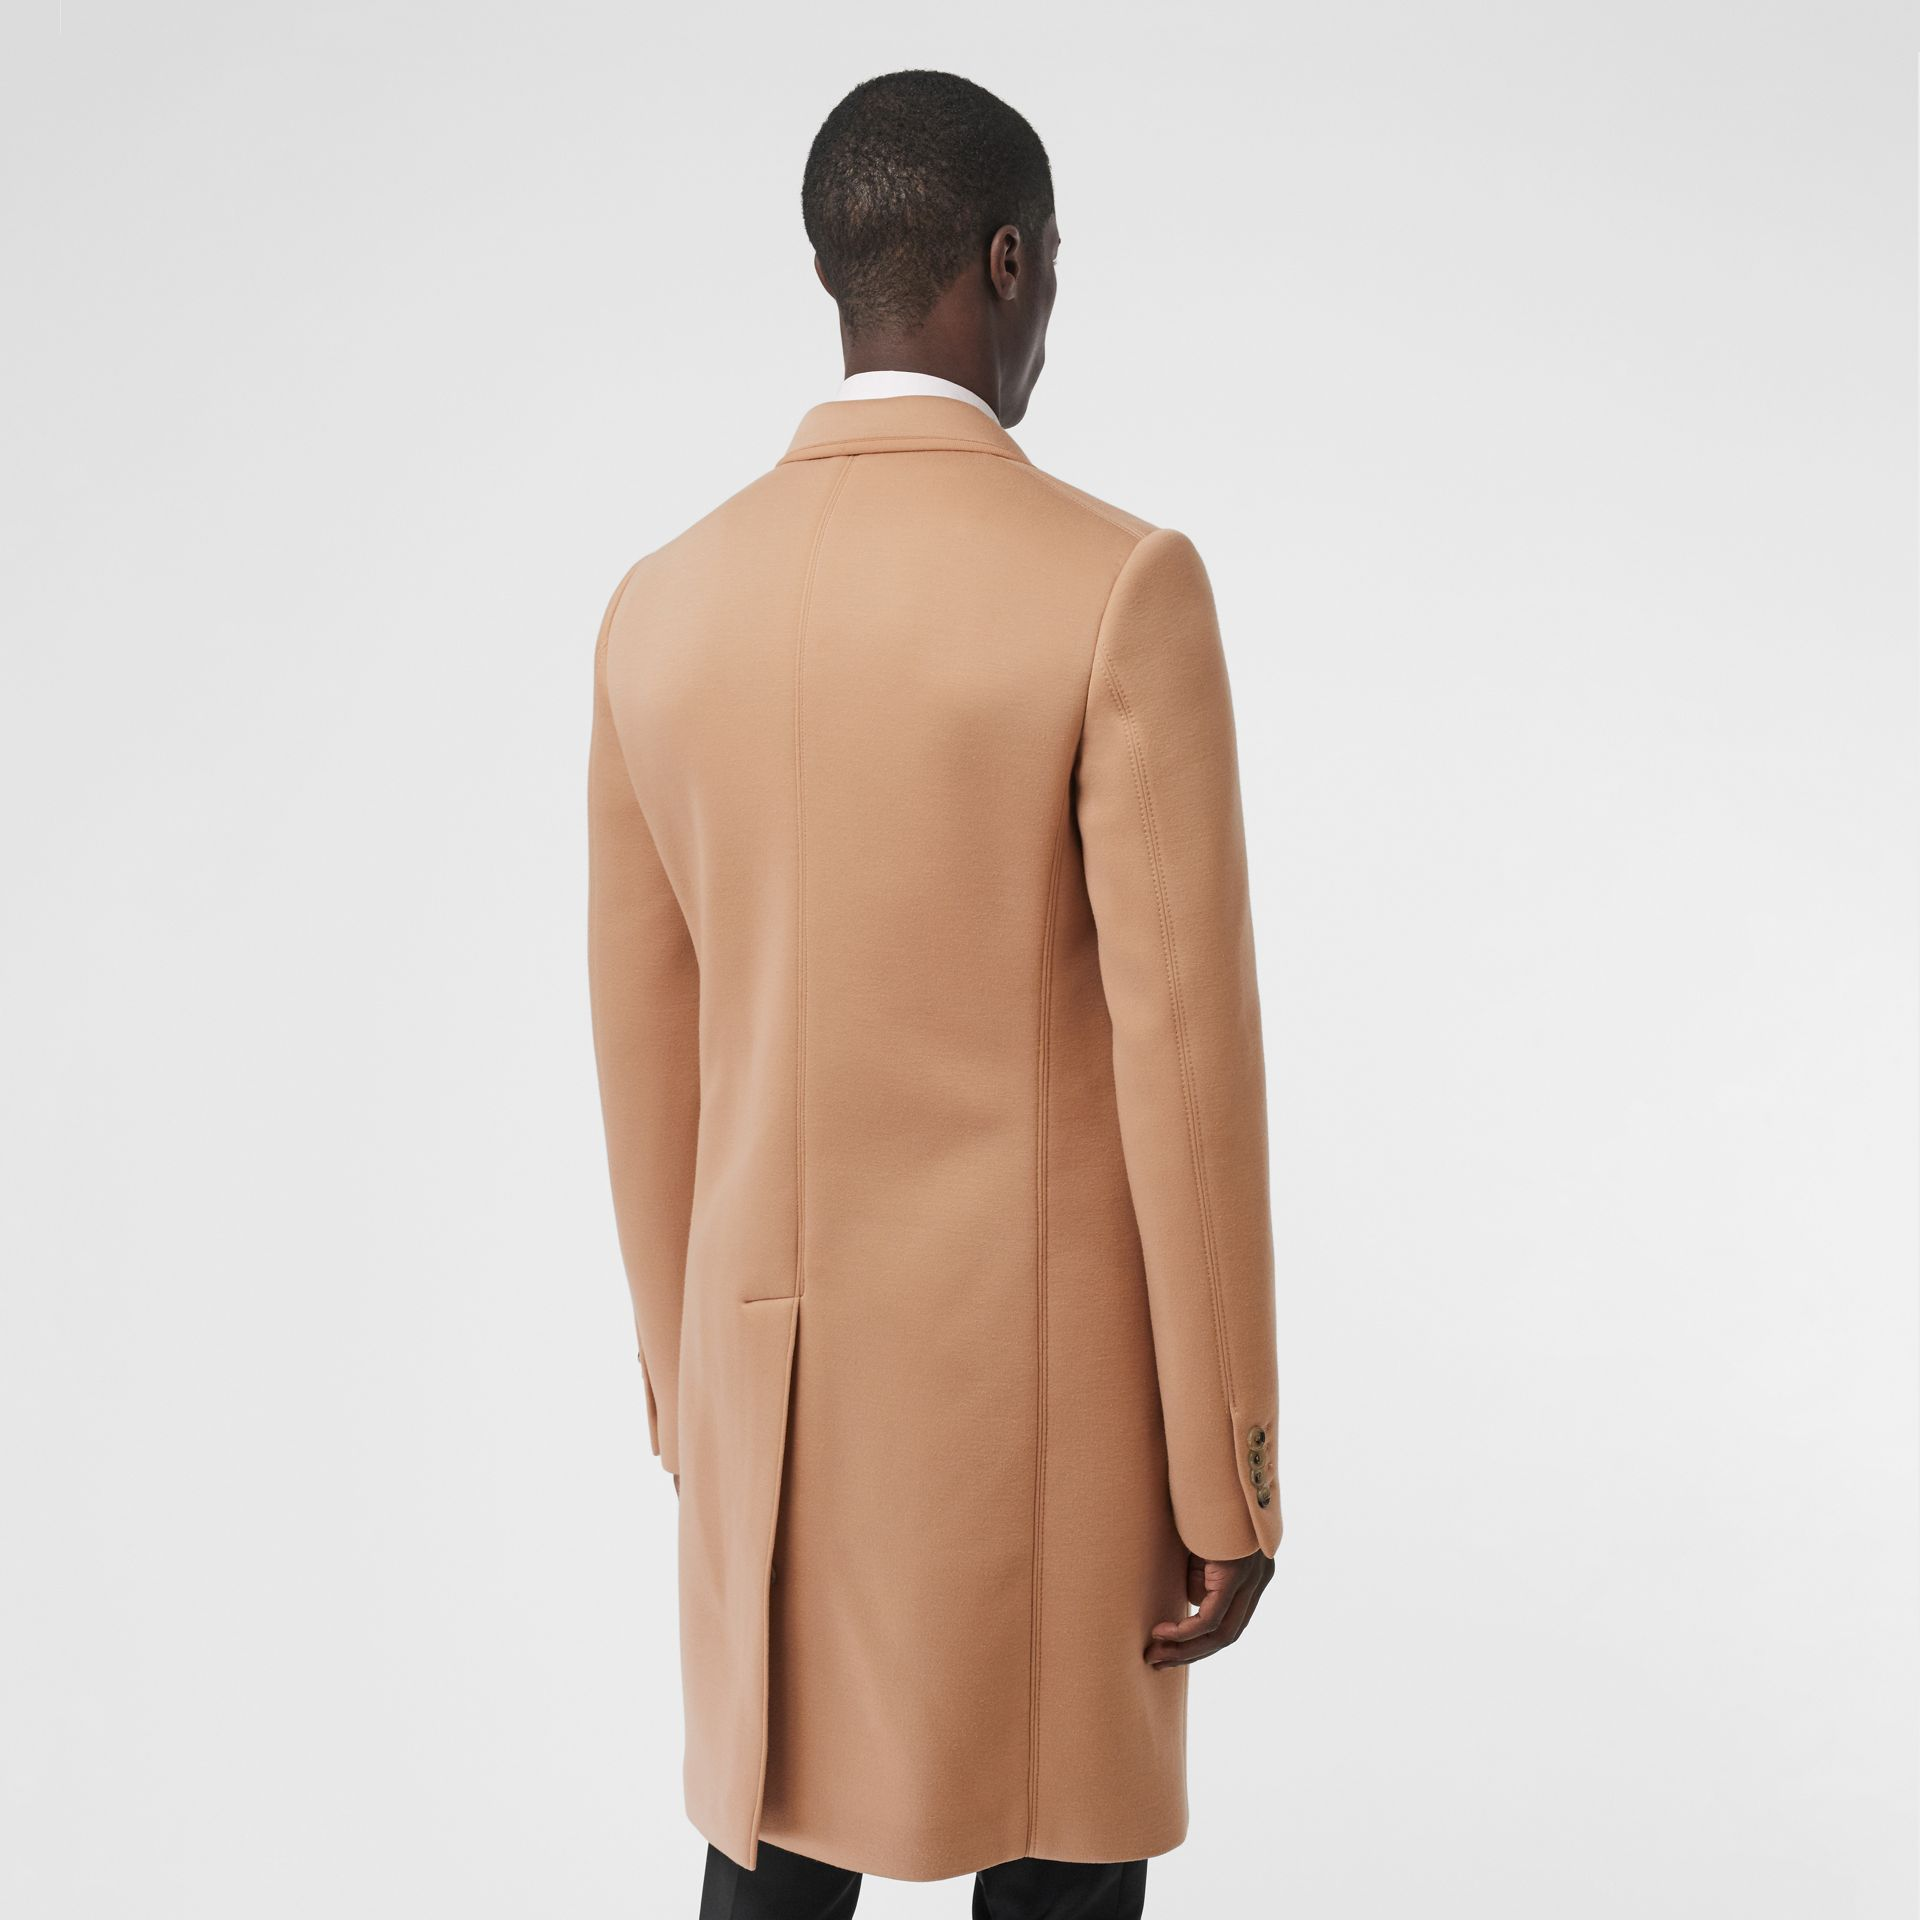 Neoprene Tailored Coat in Beige | Burberry Singapore - gallery image 2